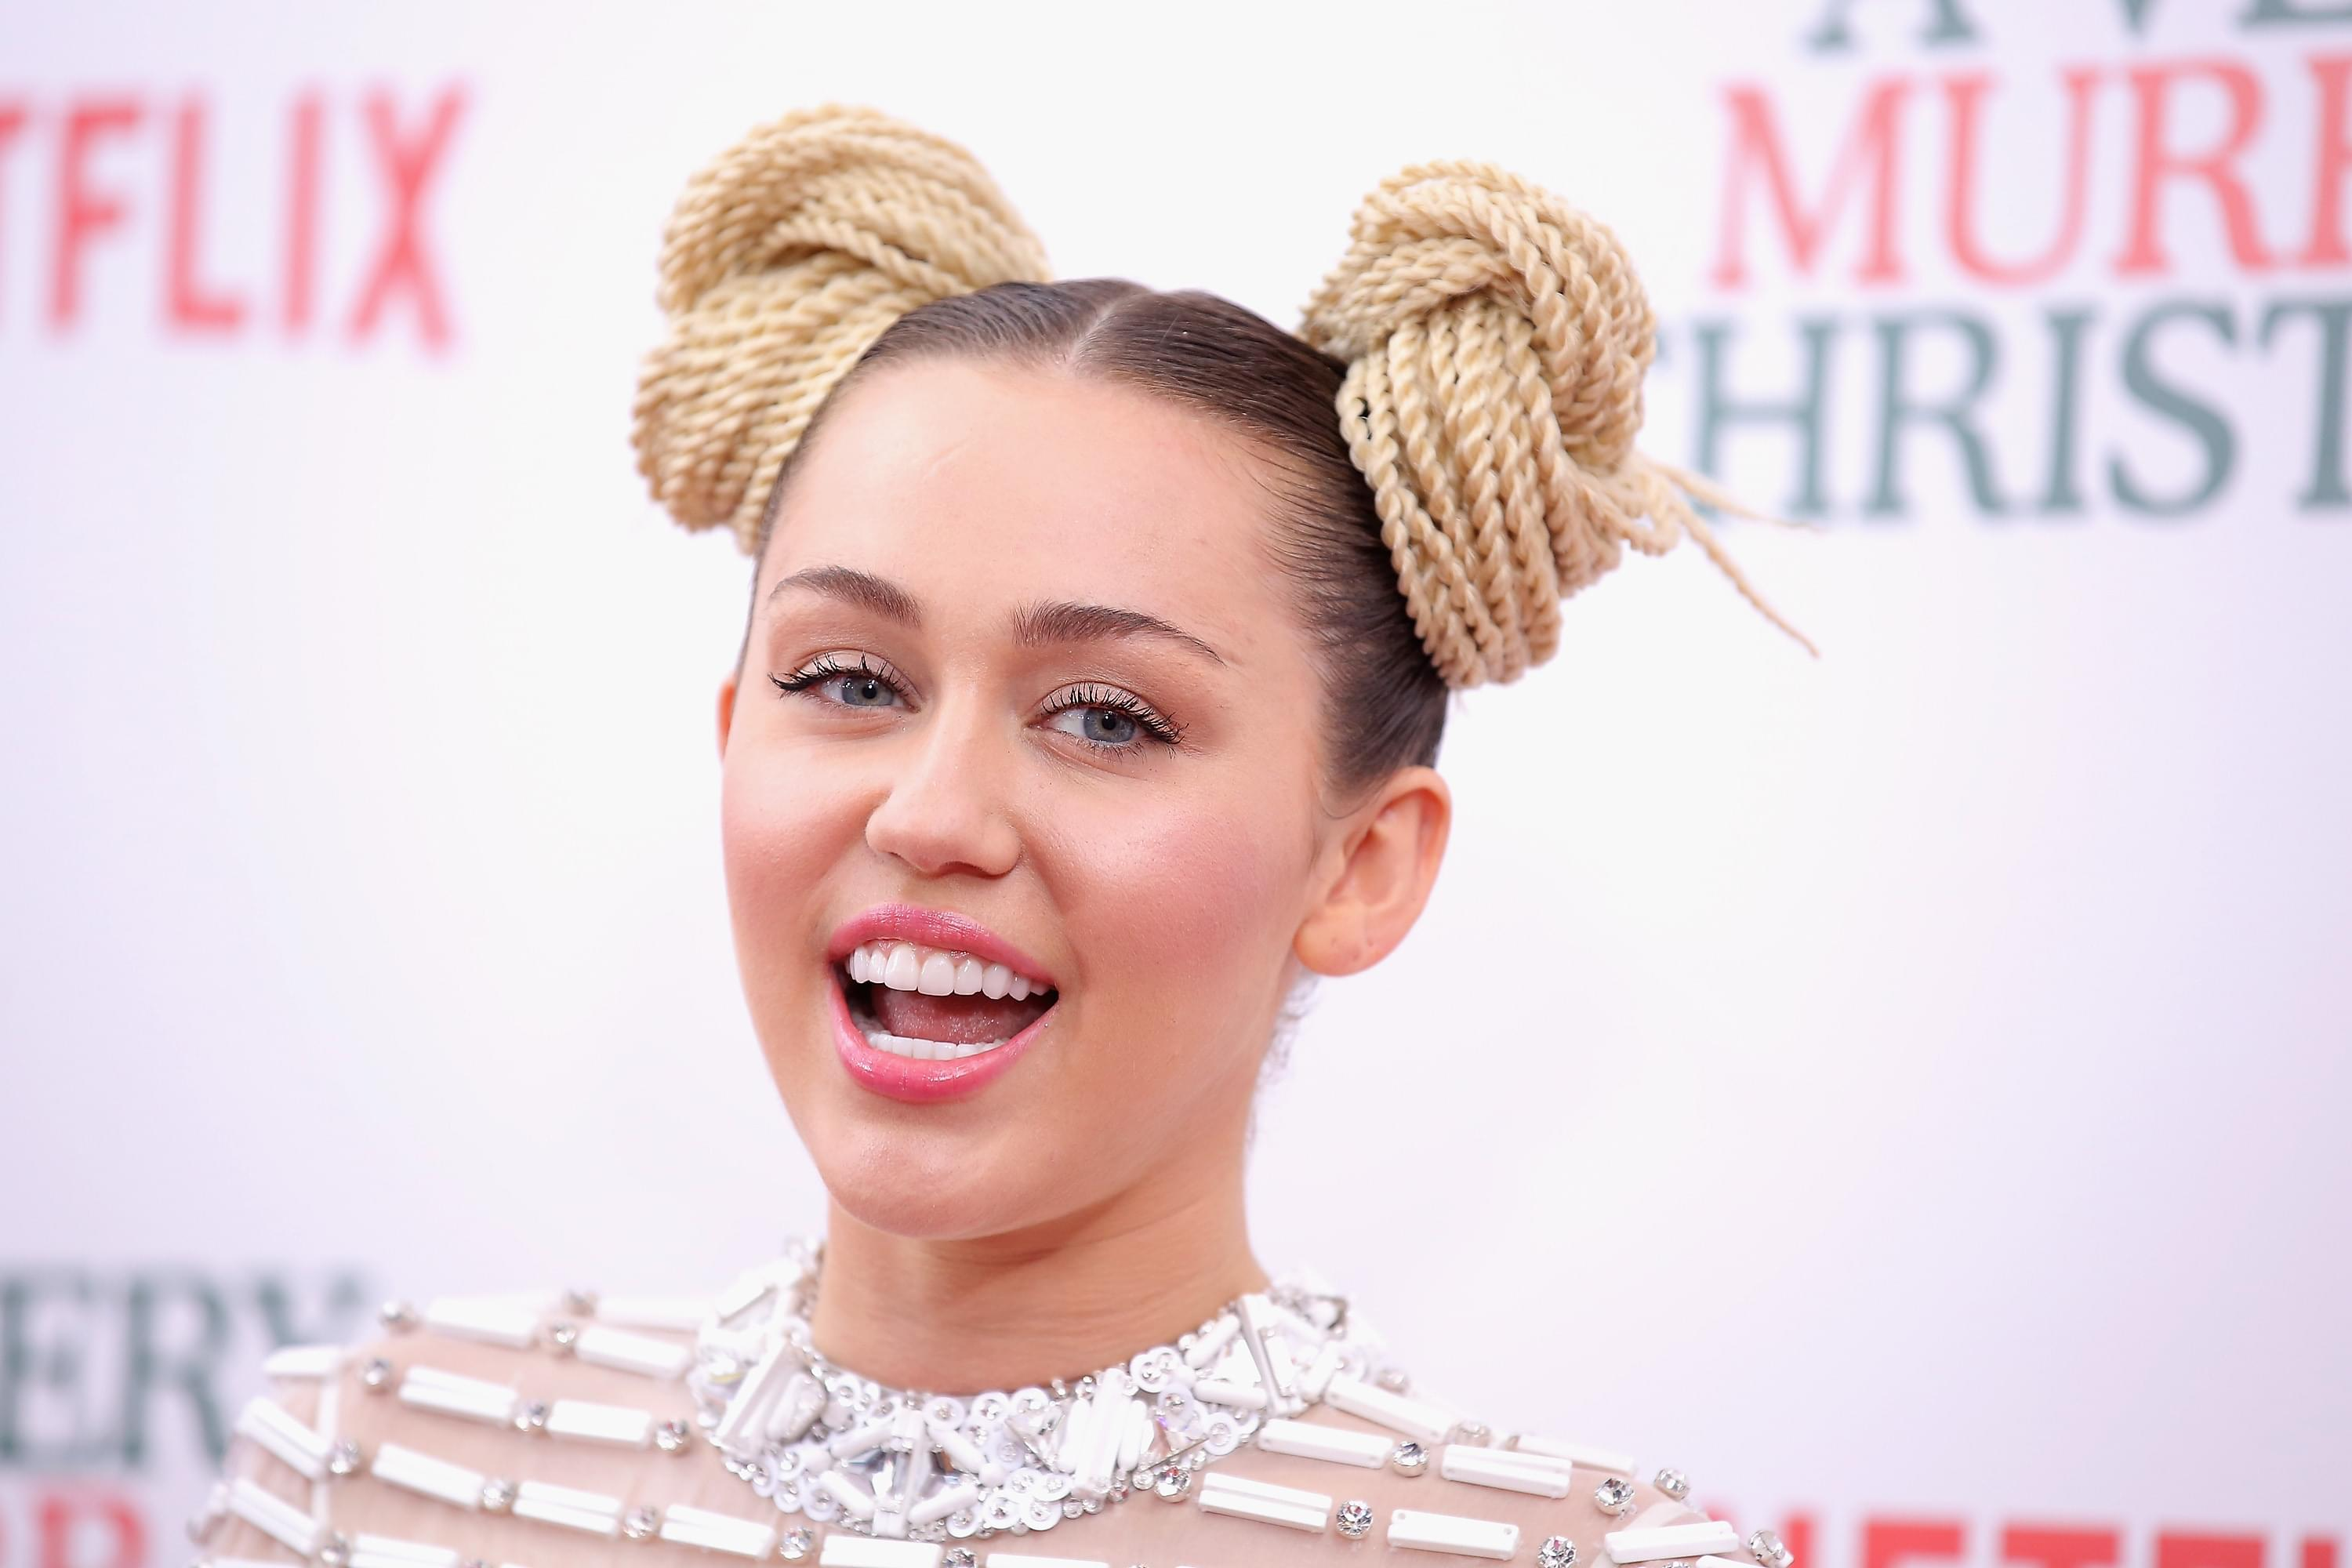 Miley Cyrus Rescued A New Dog And She's The Cutest Thing [PHOTOS]